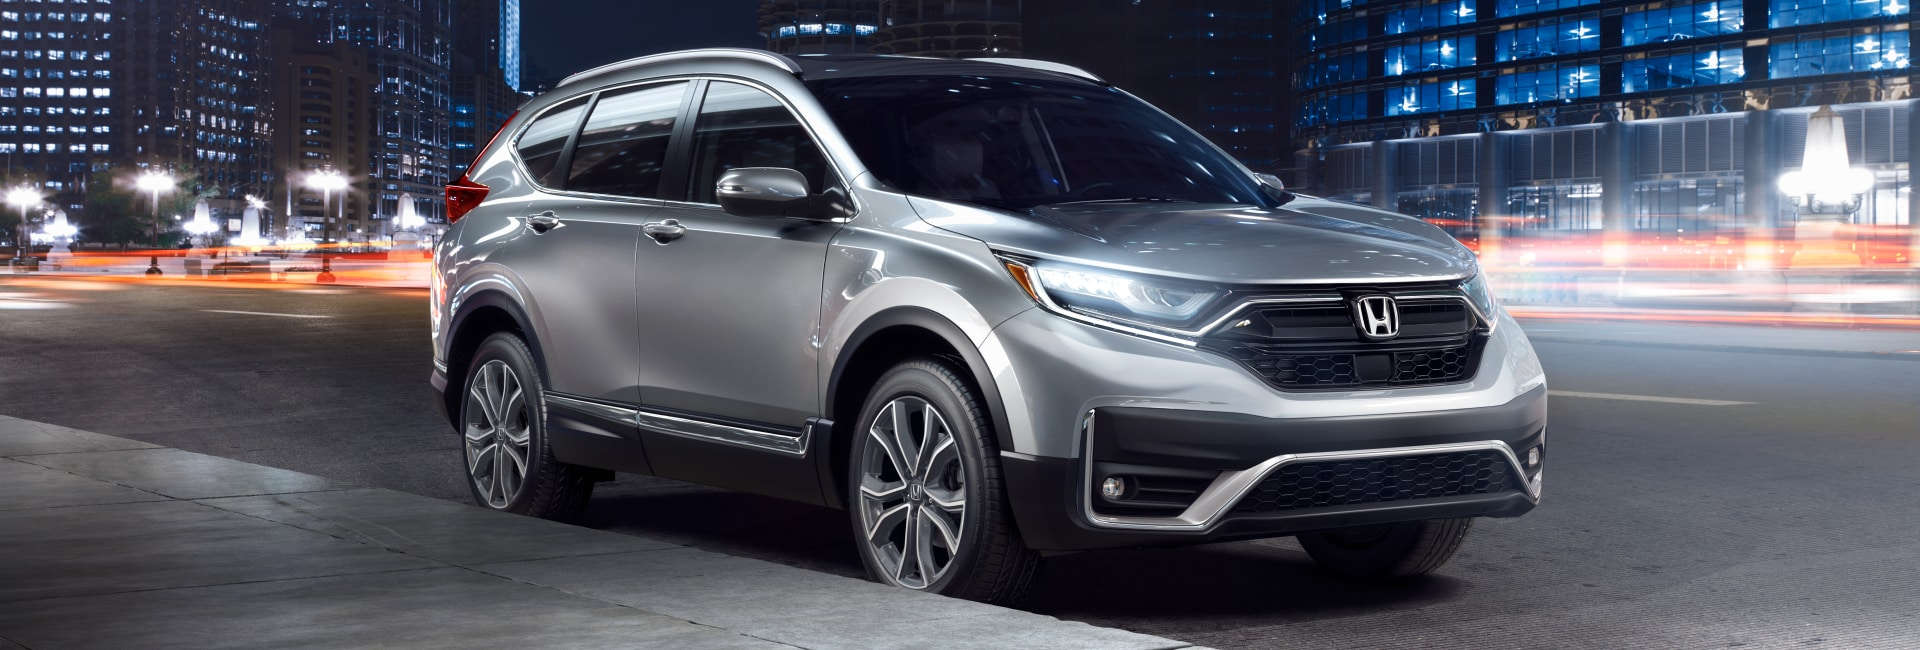 2020 Honda CR-V Exterior Features